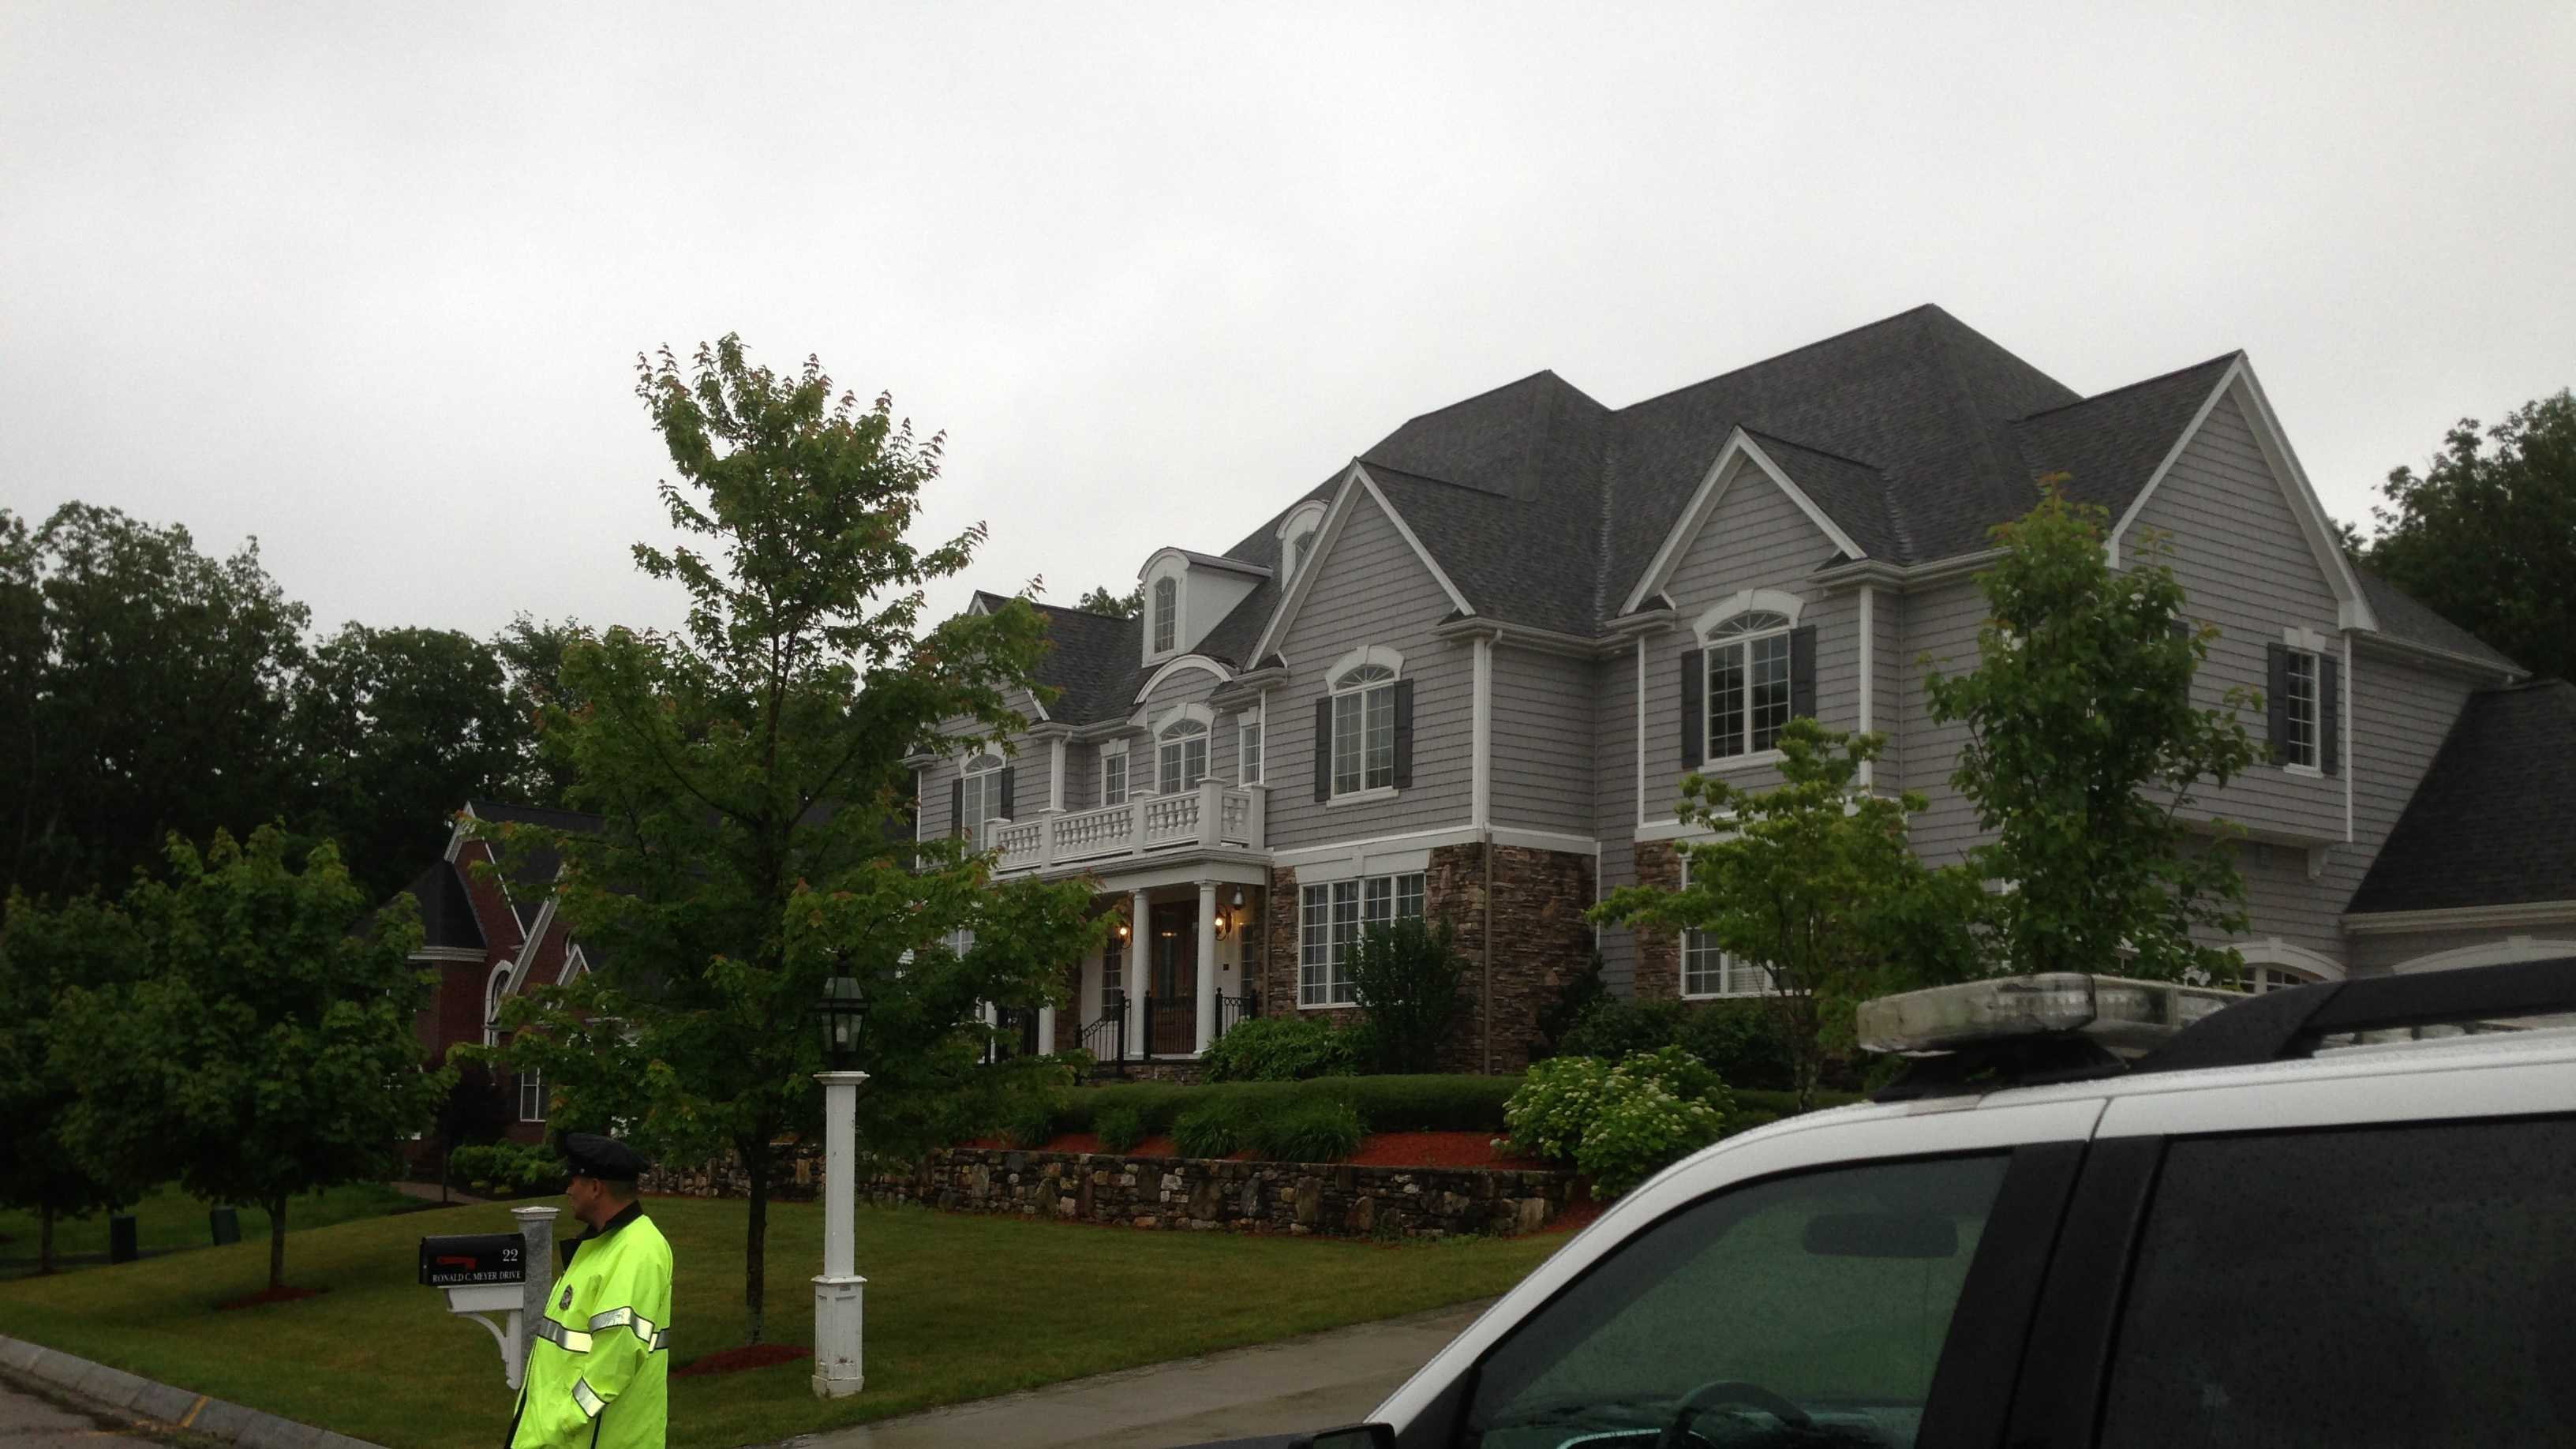 A heavy police presence outside the home of Patriots TE Aaron Hernandez in North Attleborough, Mass.